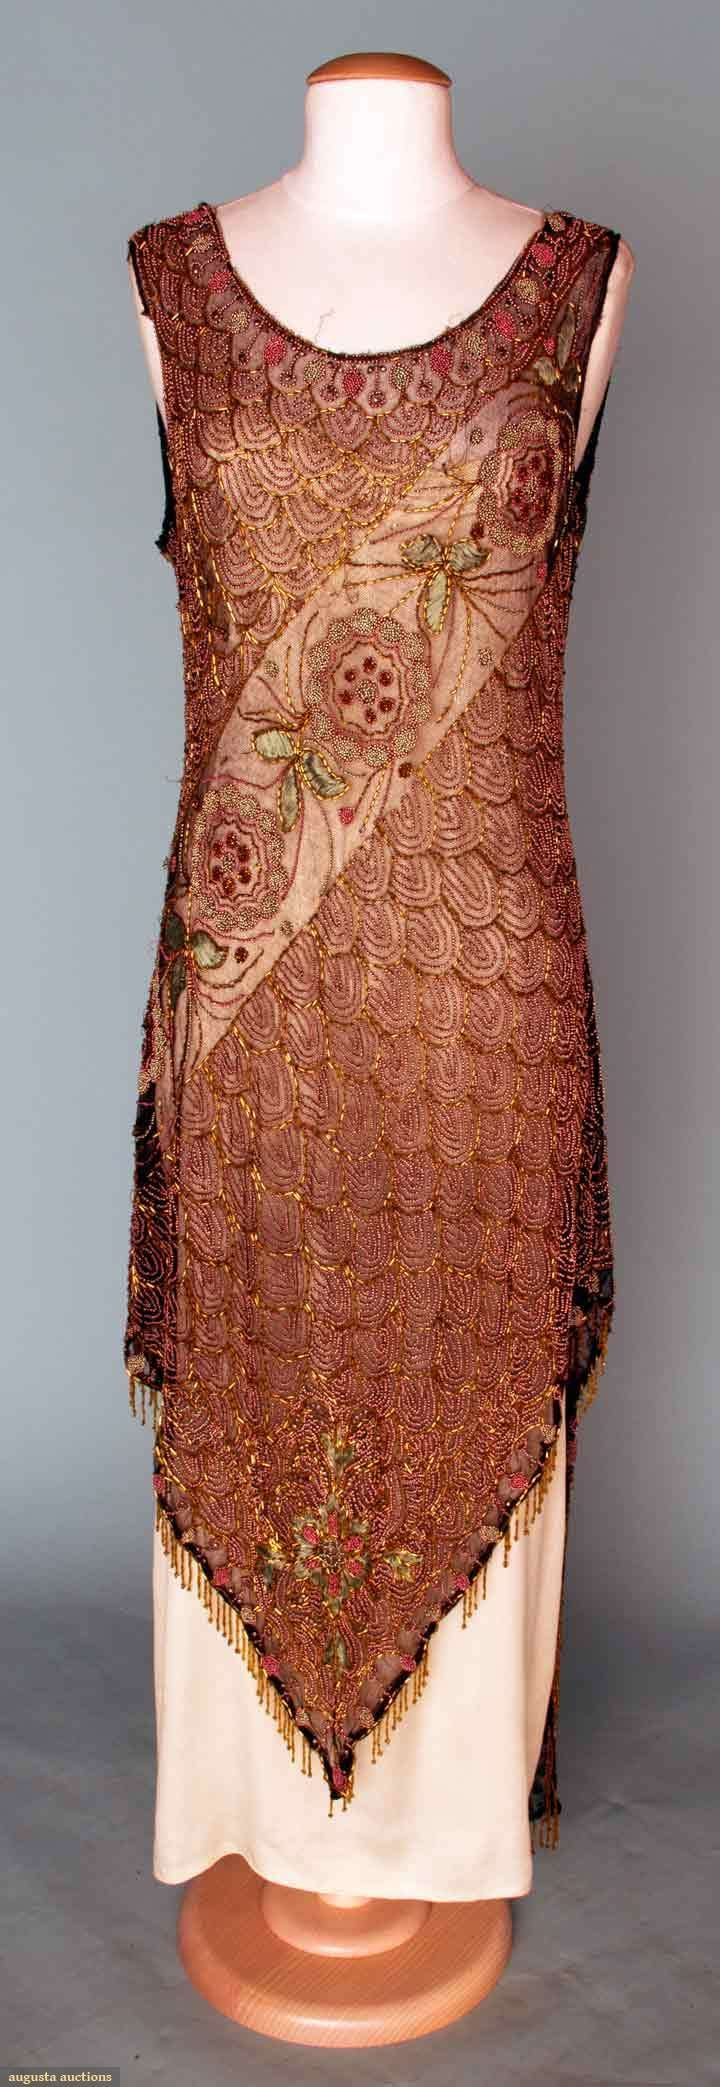 BEADED & EMBROIDERED PARTY DRESS, 1920s  Black net, copper scallop motifs on F & B, broken by wide diagonal band w/ blossoms & foliage in blue & pink metal beads & teal blue silk embroidery, front hem comes to center V point, longer back square hem w/ center split